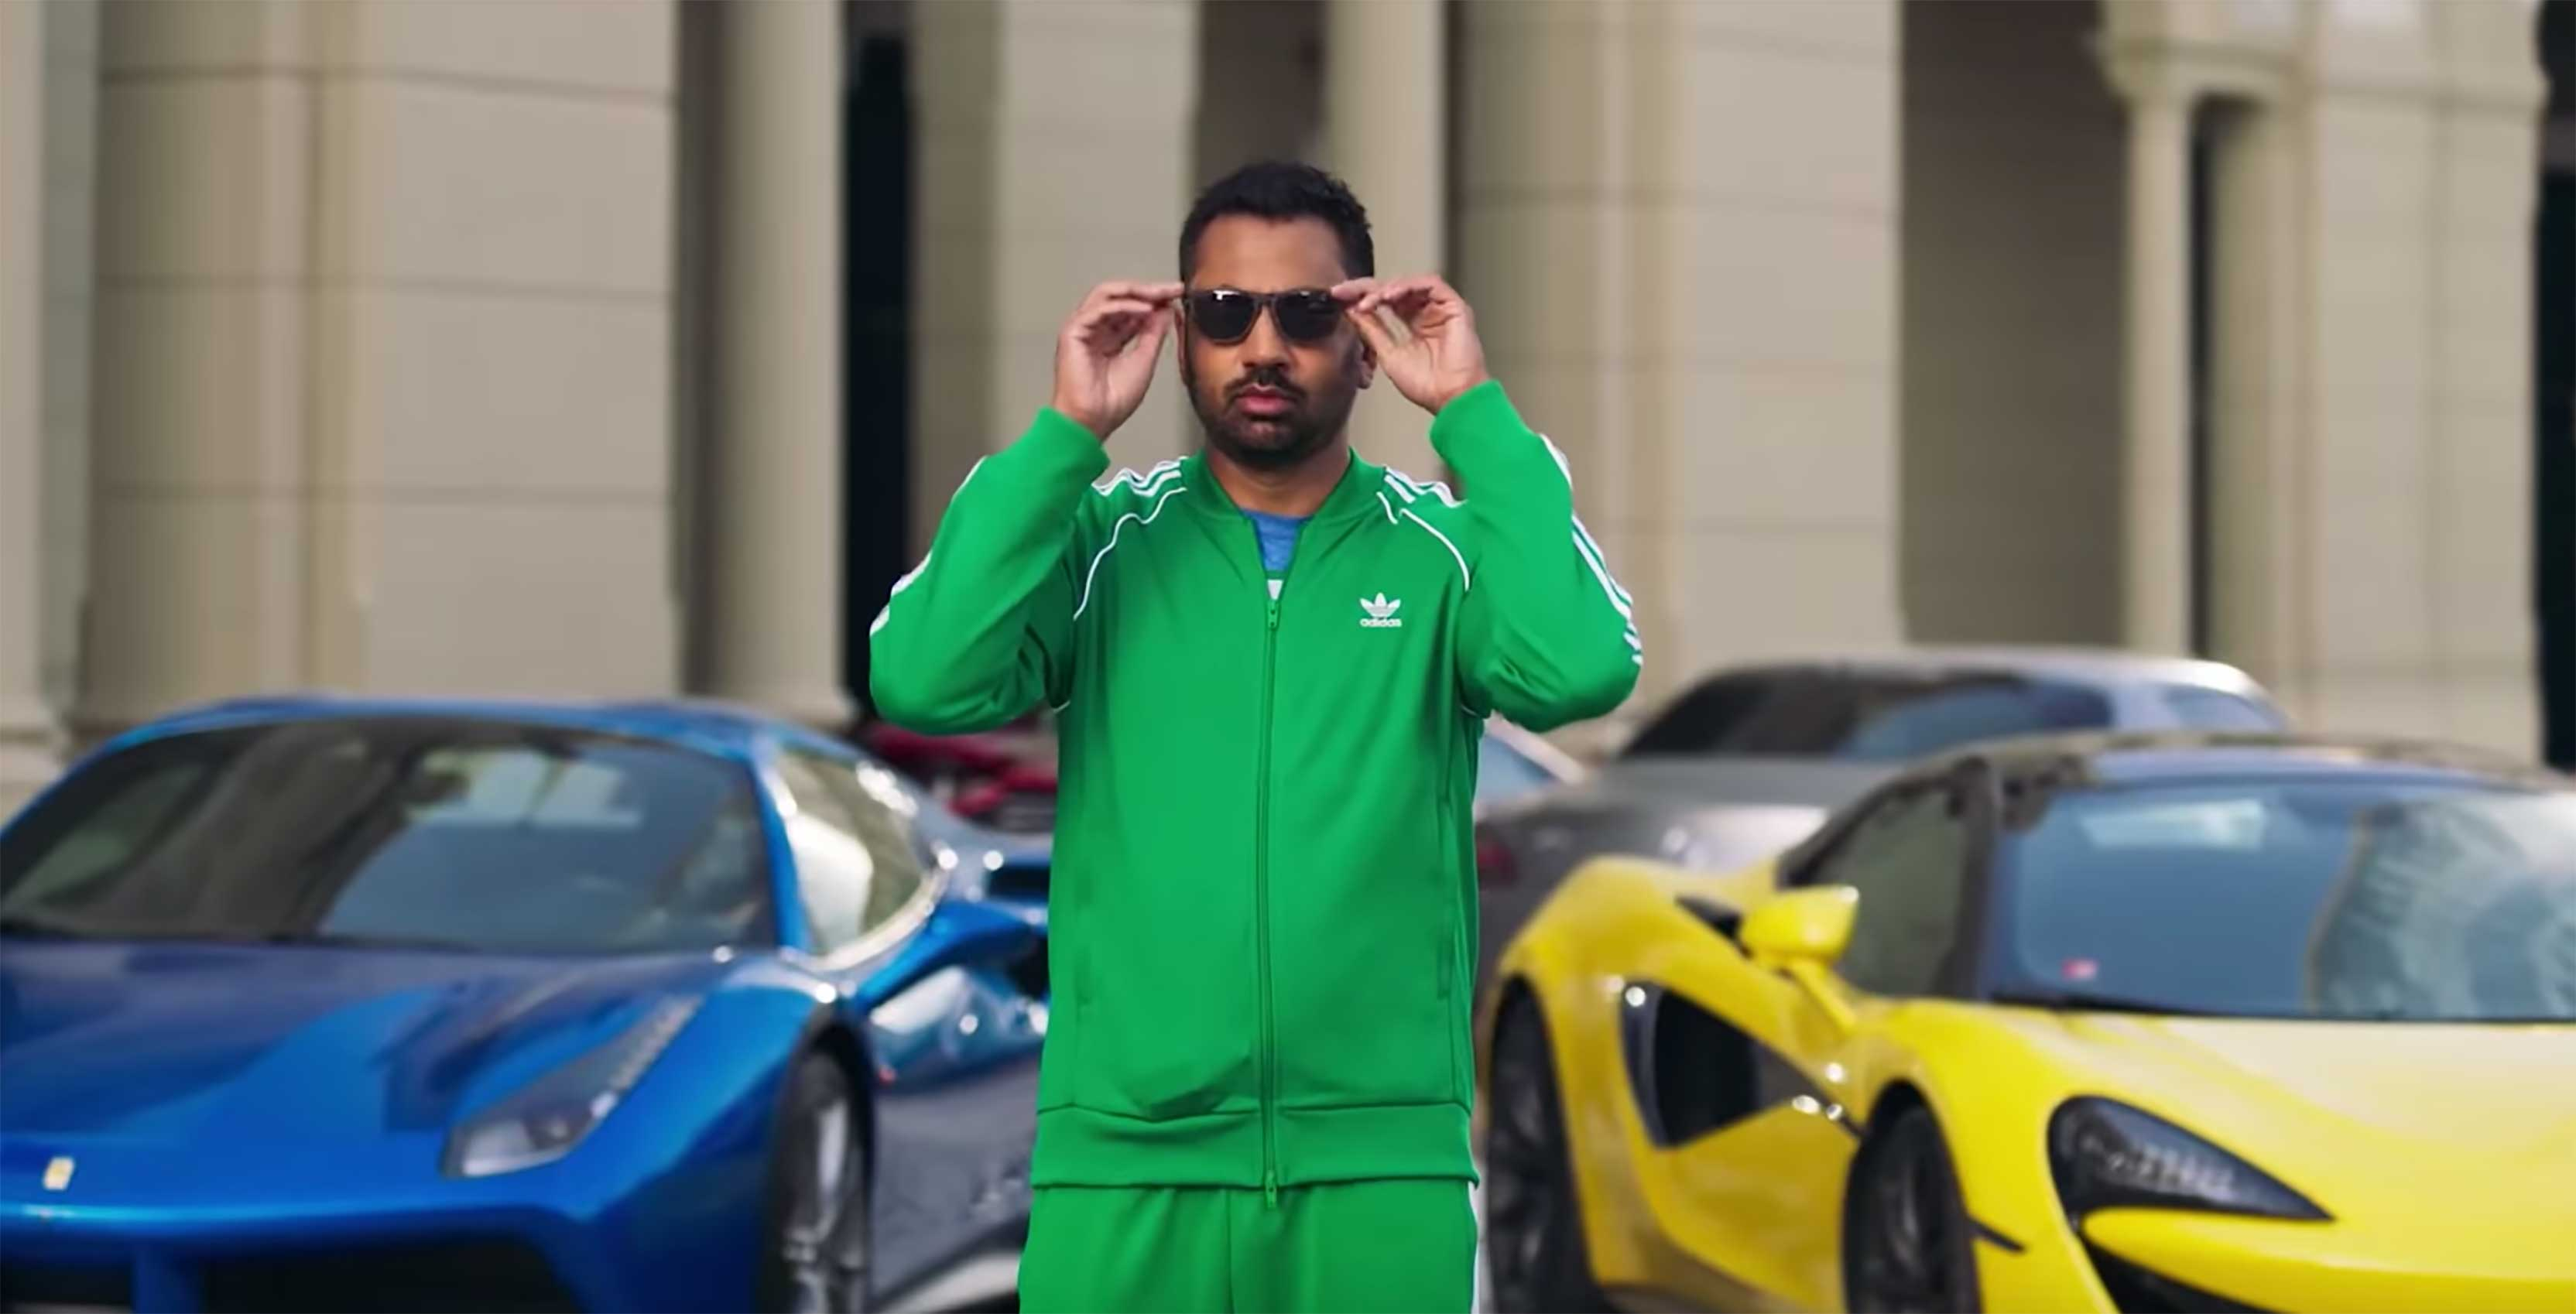 Kal Penn in This Giant Beast That Is The Global Economy